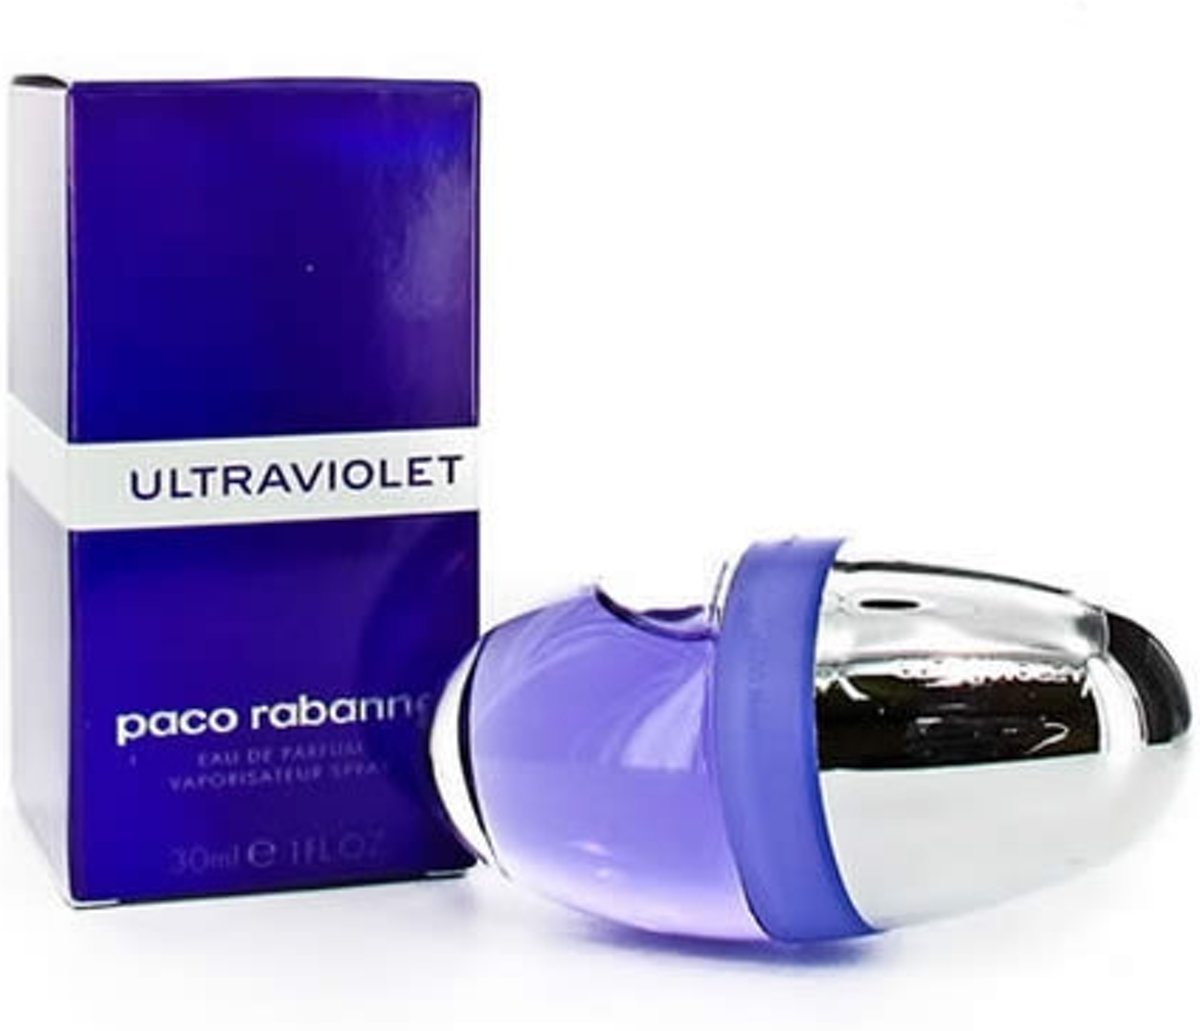 MULTI BUNDEL 2 stuks Paco Rabanne Ultraviolet Eau De Perfume Spray 30ml